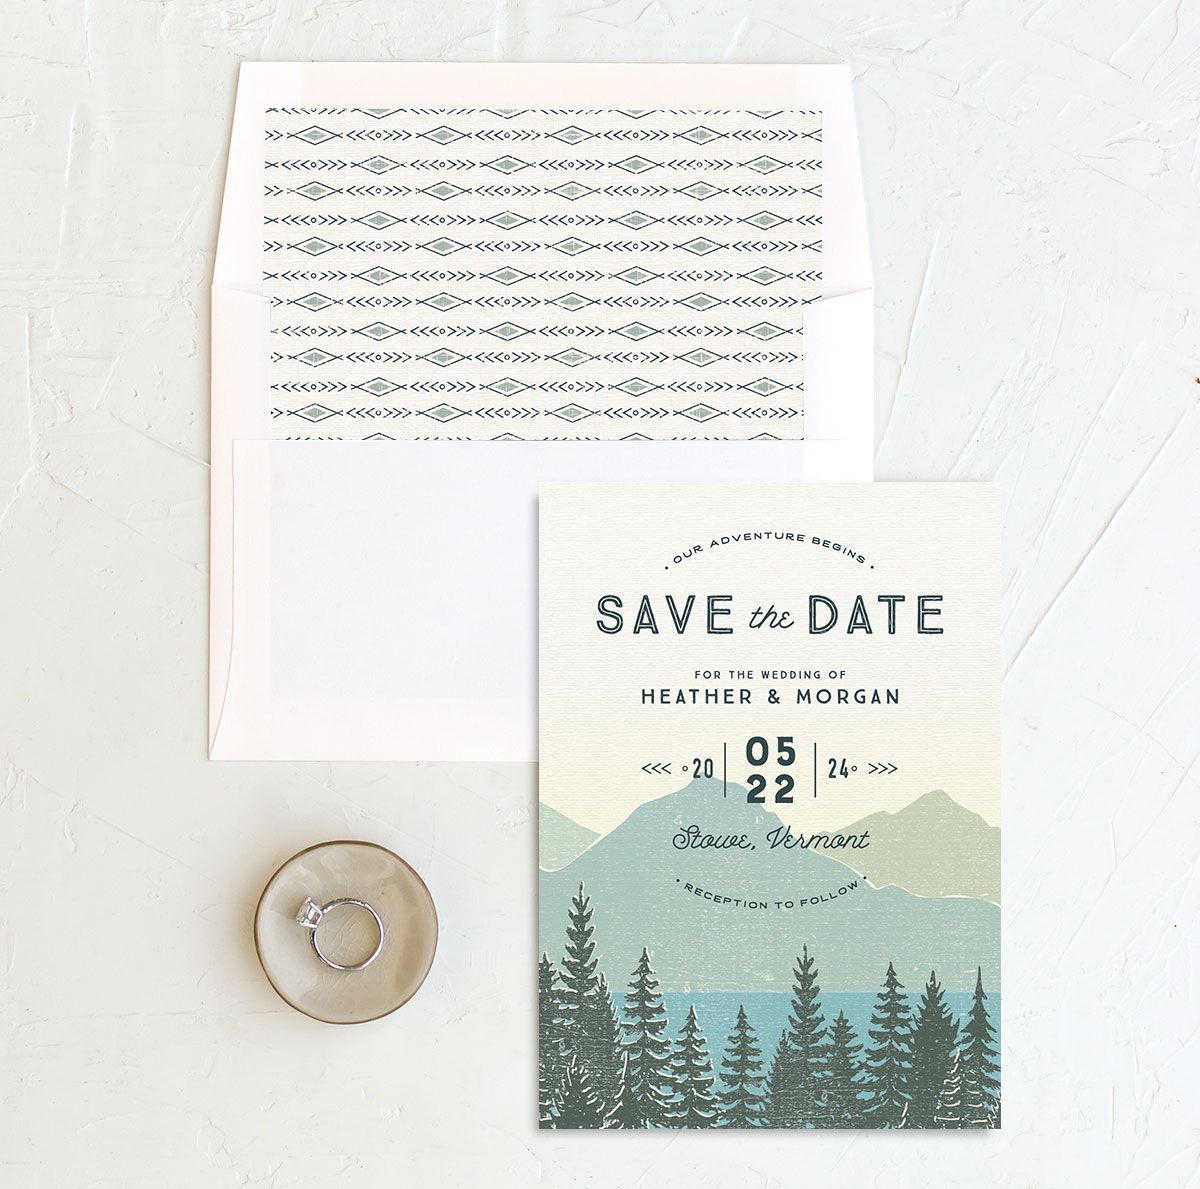 Vintage Mountainside Save the Date and envelope liner in teal